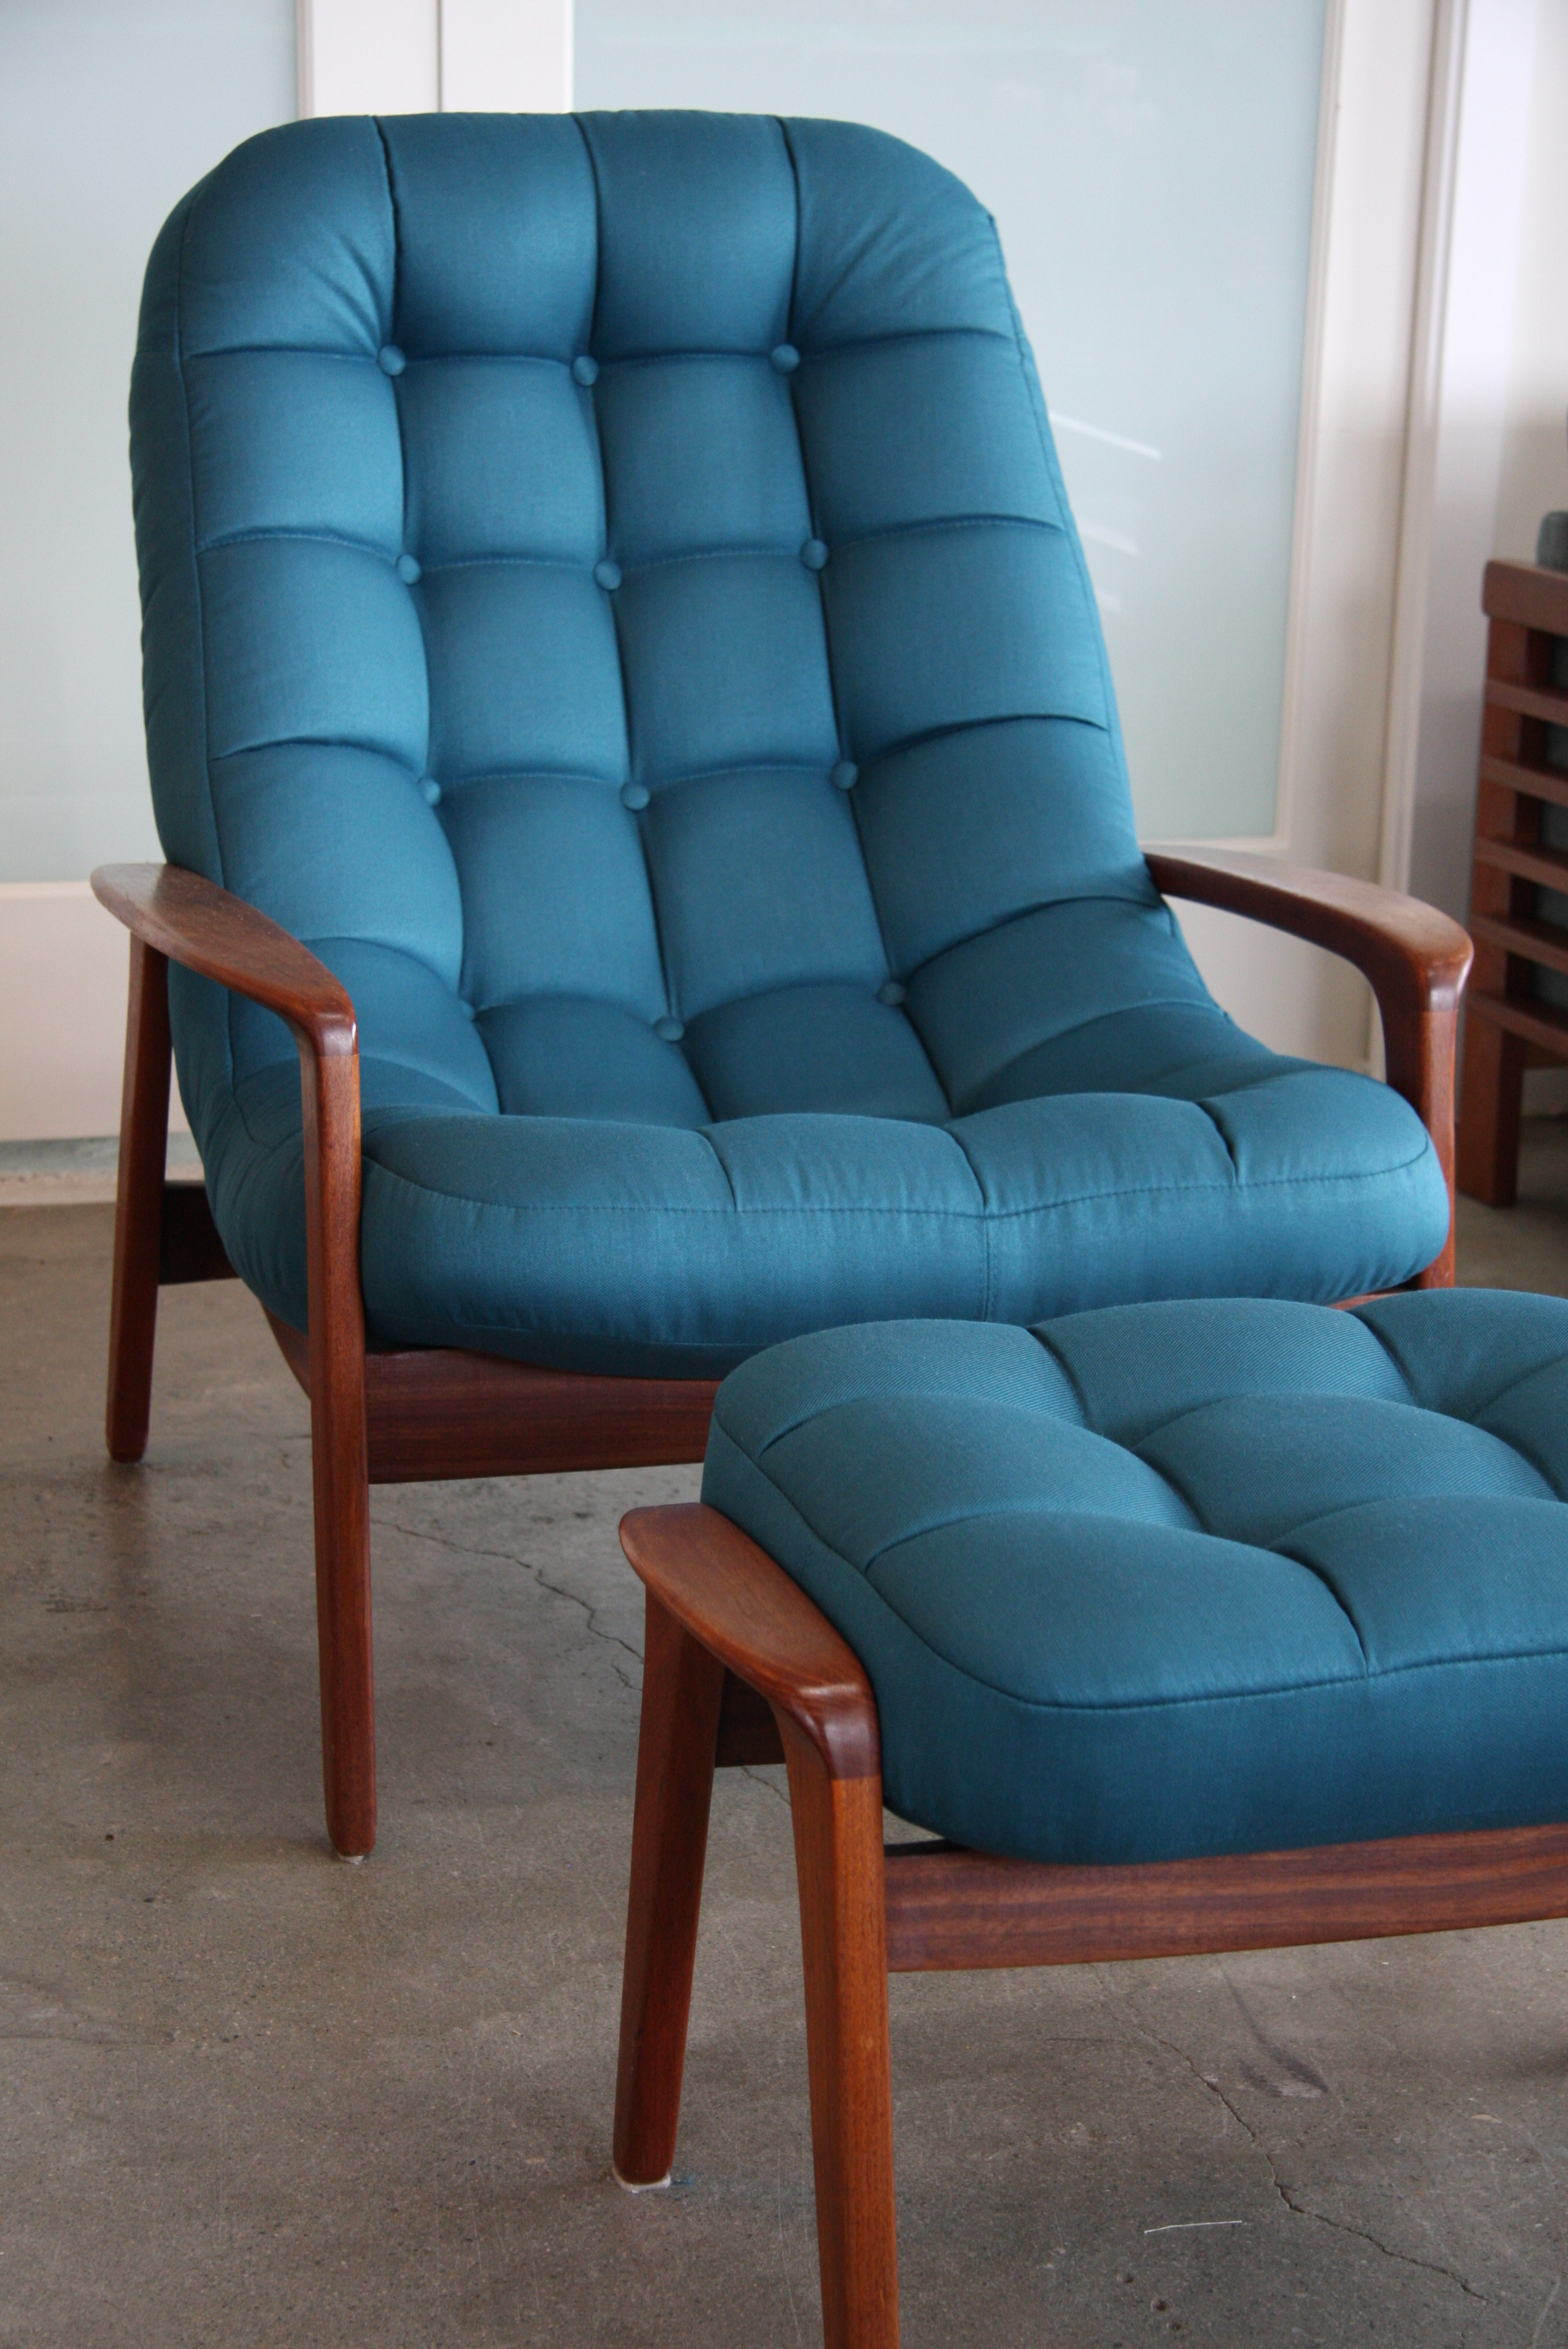 Mid Century Modern palm chair.